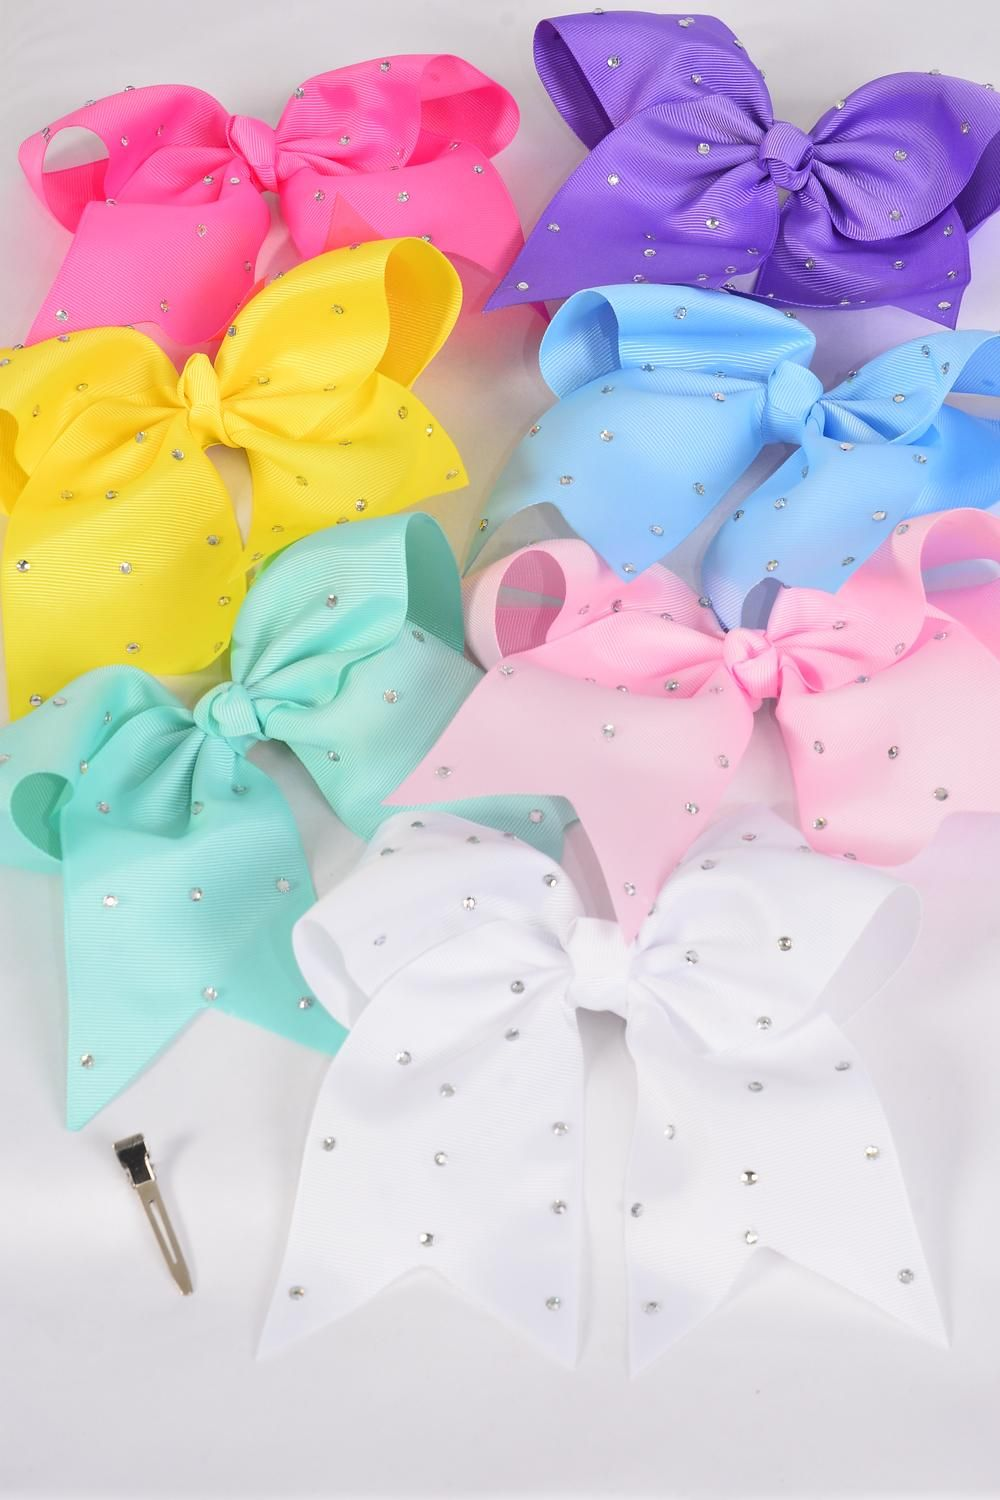 "Hair Bow Extra Jumbo Long Tail Clear Stones Cheer Bow Type Grosgrain Bow-tie Pastel/DZ **Pastel** Alligator Clip,Size-7""x 6"" Wide,2 White,2 Yellow,2 Blue,2 Hot Pink,2 Lavender,1 Pink,1 Green 7 Color Asst,Clip Strip & UPC Code"